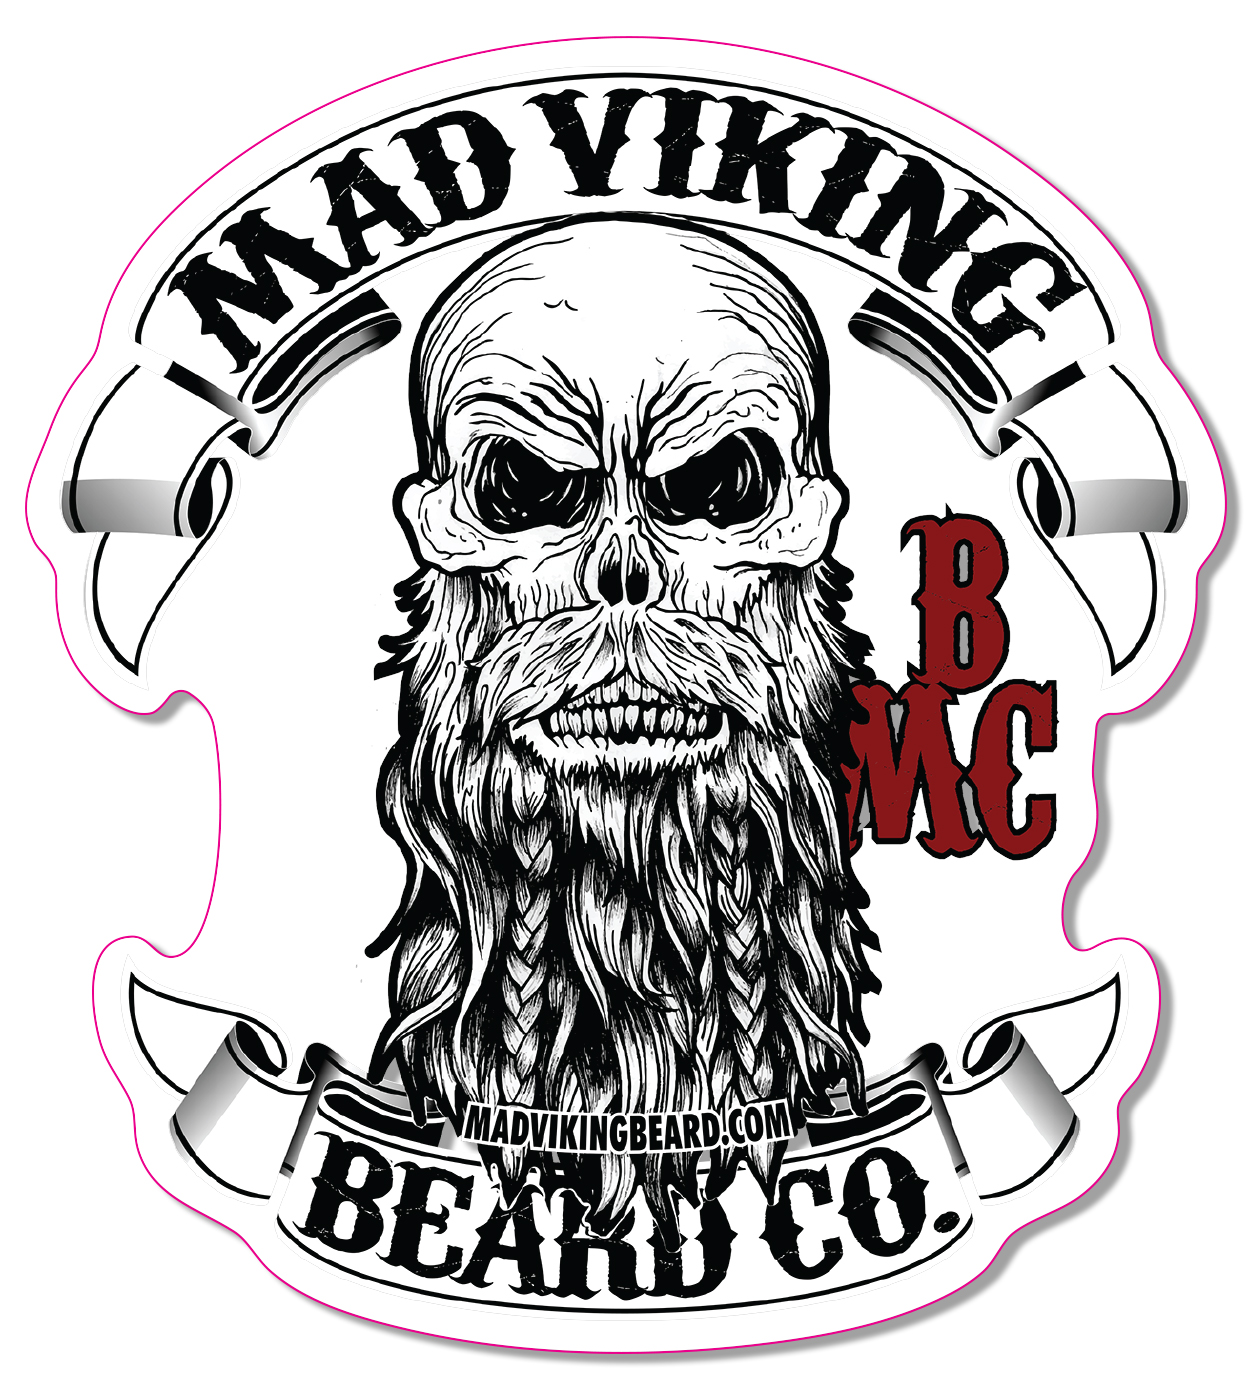 Mad viking logo sticker 4x 4 387